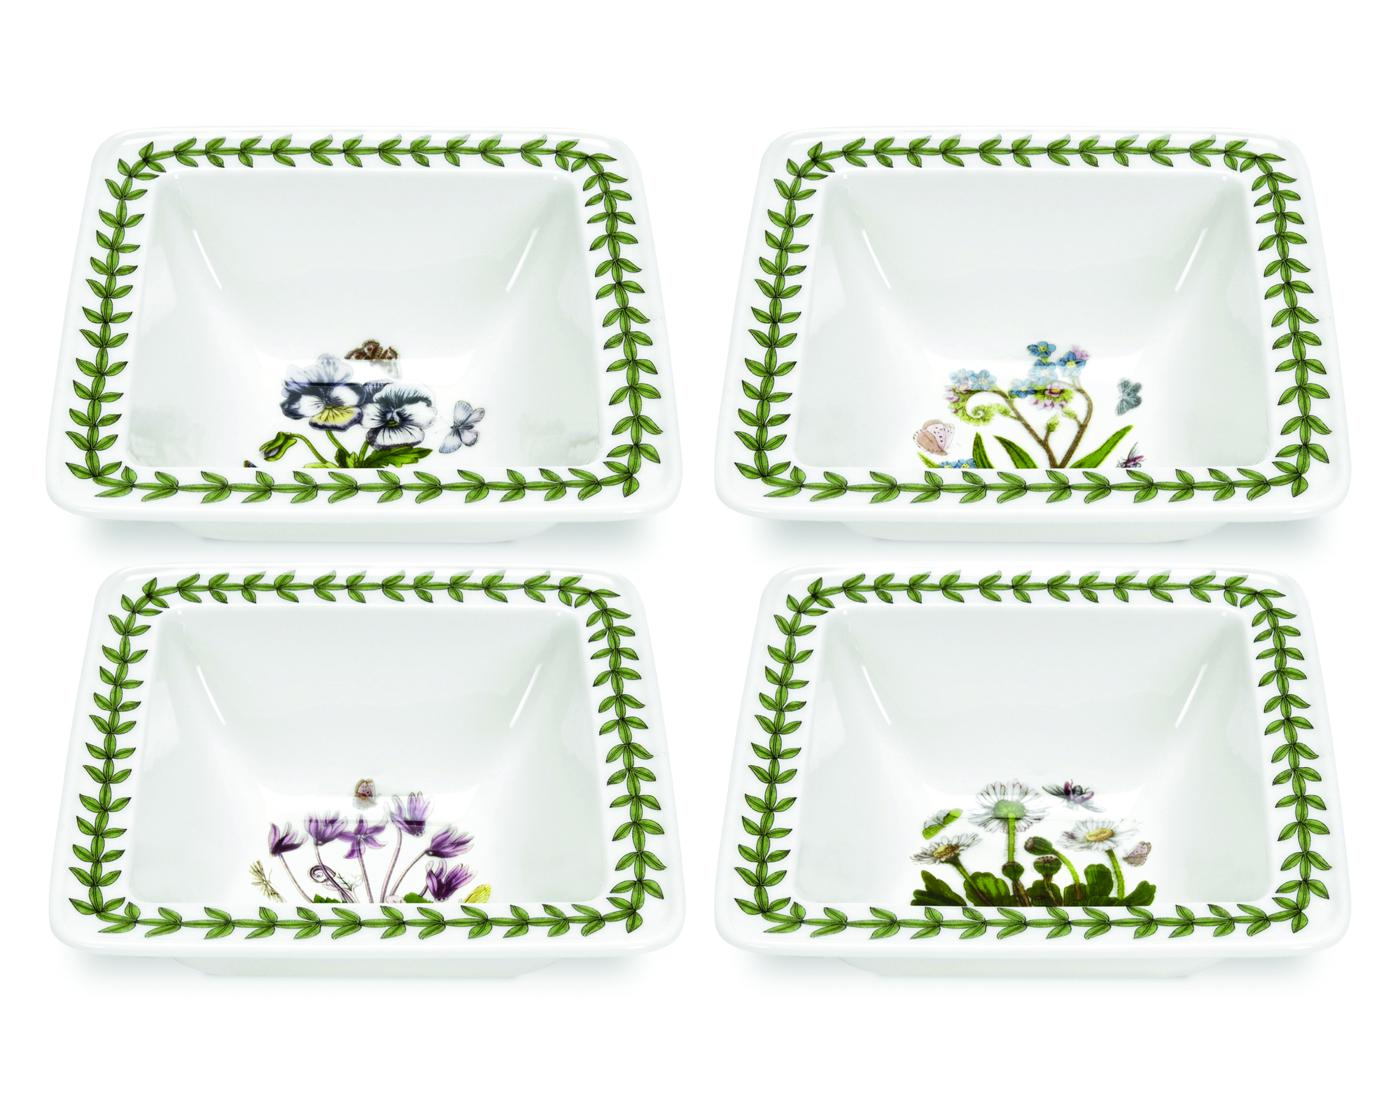 Botanic Garden Set of 4 Square Mini Bowls (Assorted Motifs) image number 0